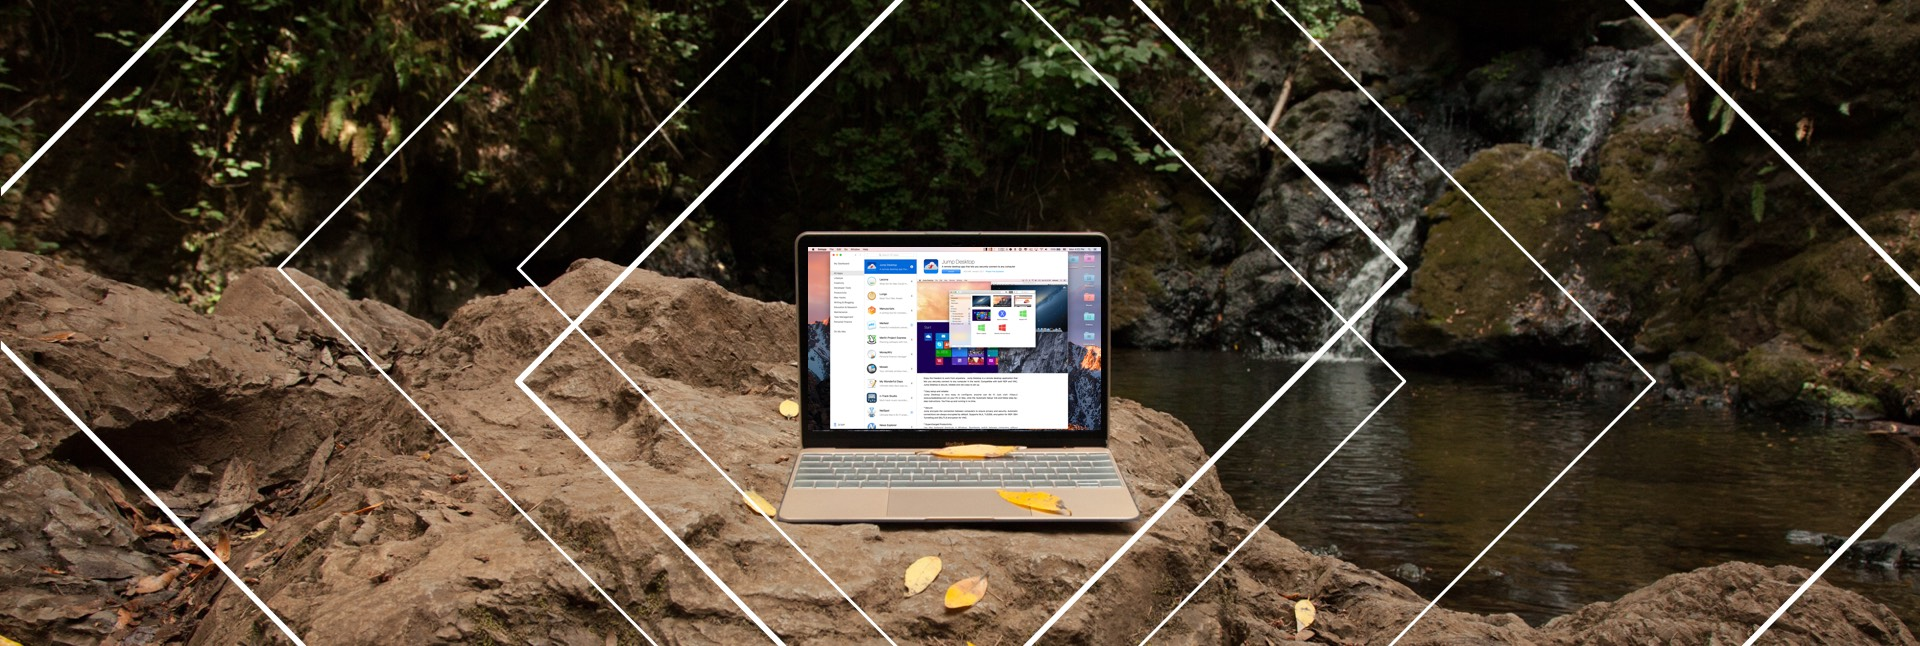 How to Access your Mac Remotely from Any Device and Anywhere